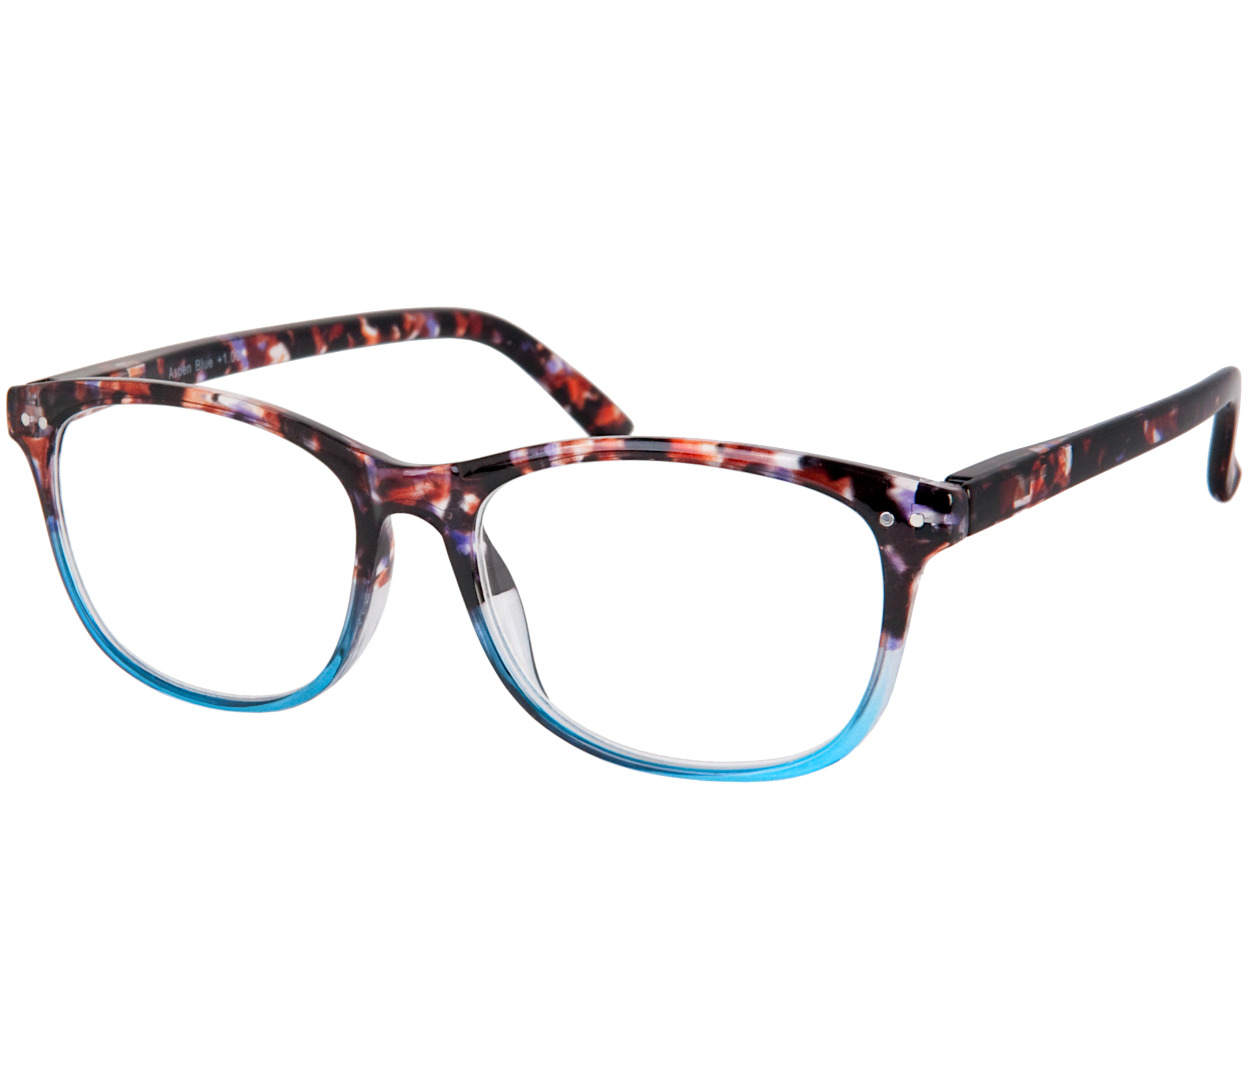 Main Image (Angle) - Aspen (Blue) Fashion Reading Glasses